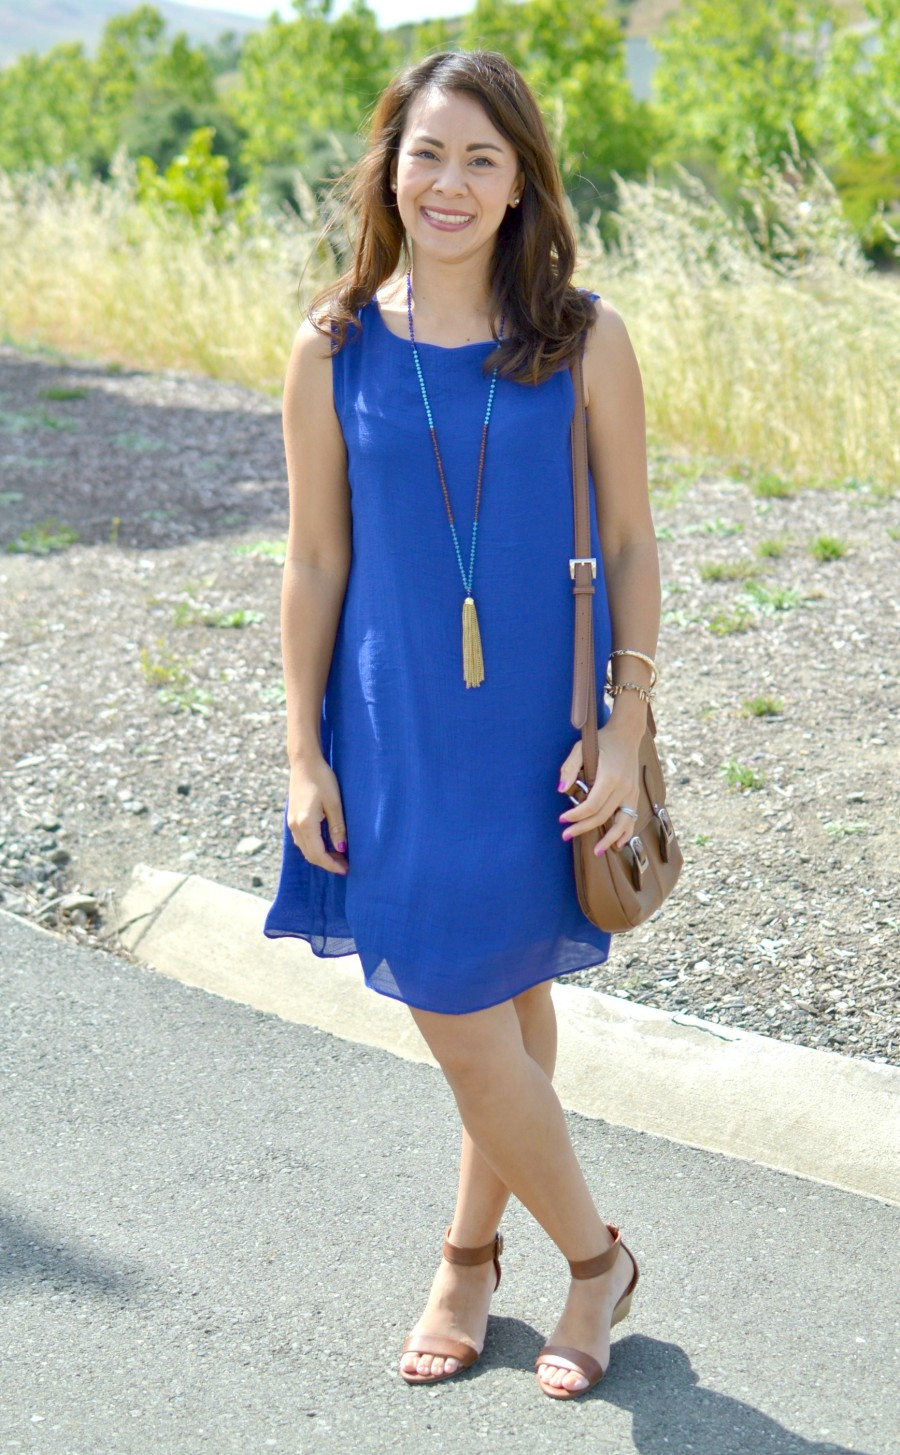 BLUE DRESS CASUAL 1